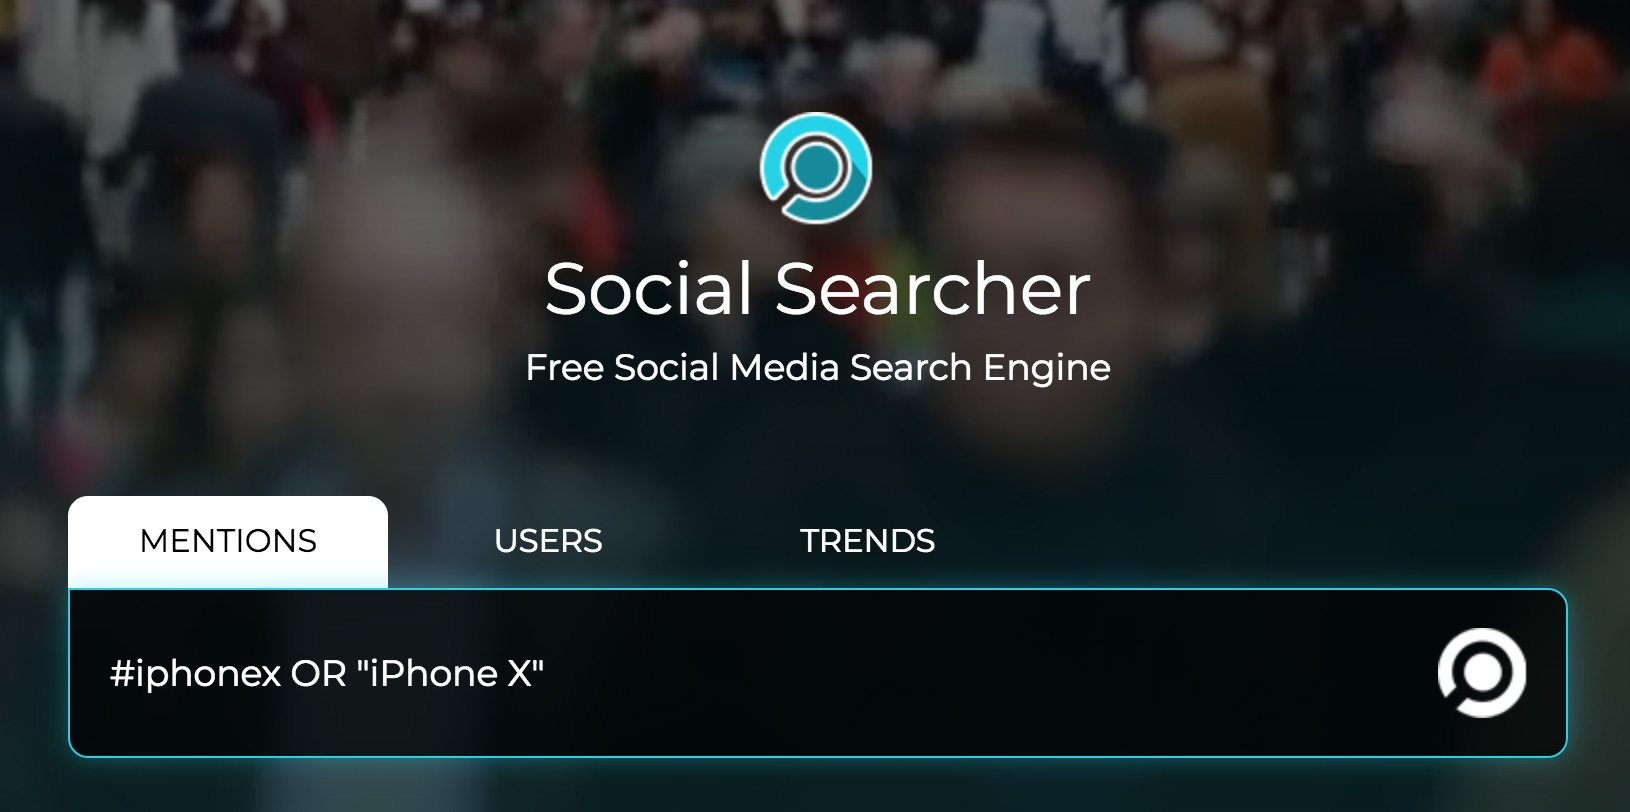 Go To This Link And Search The Topic You Wish See Trending Posts In S Twitter Home